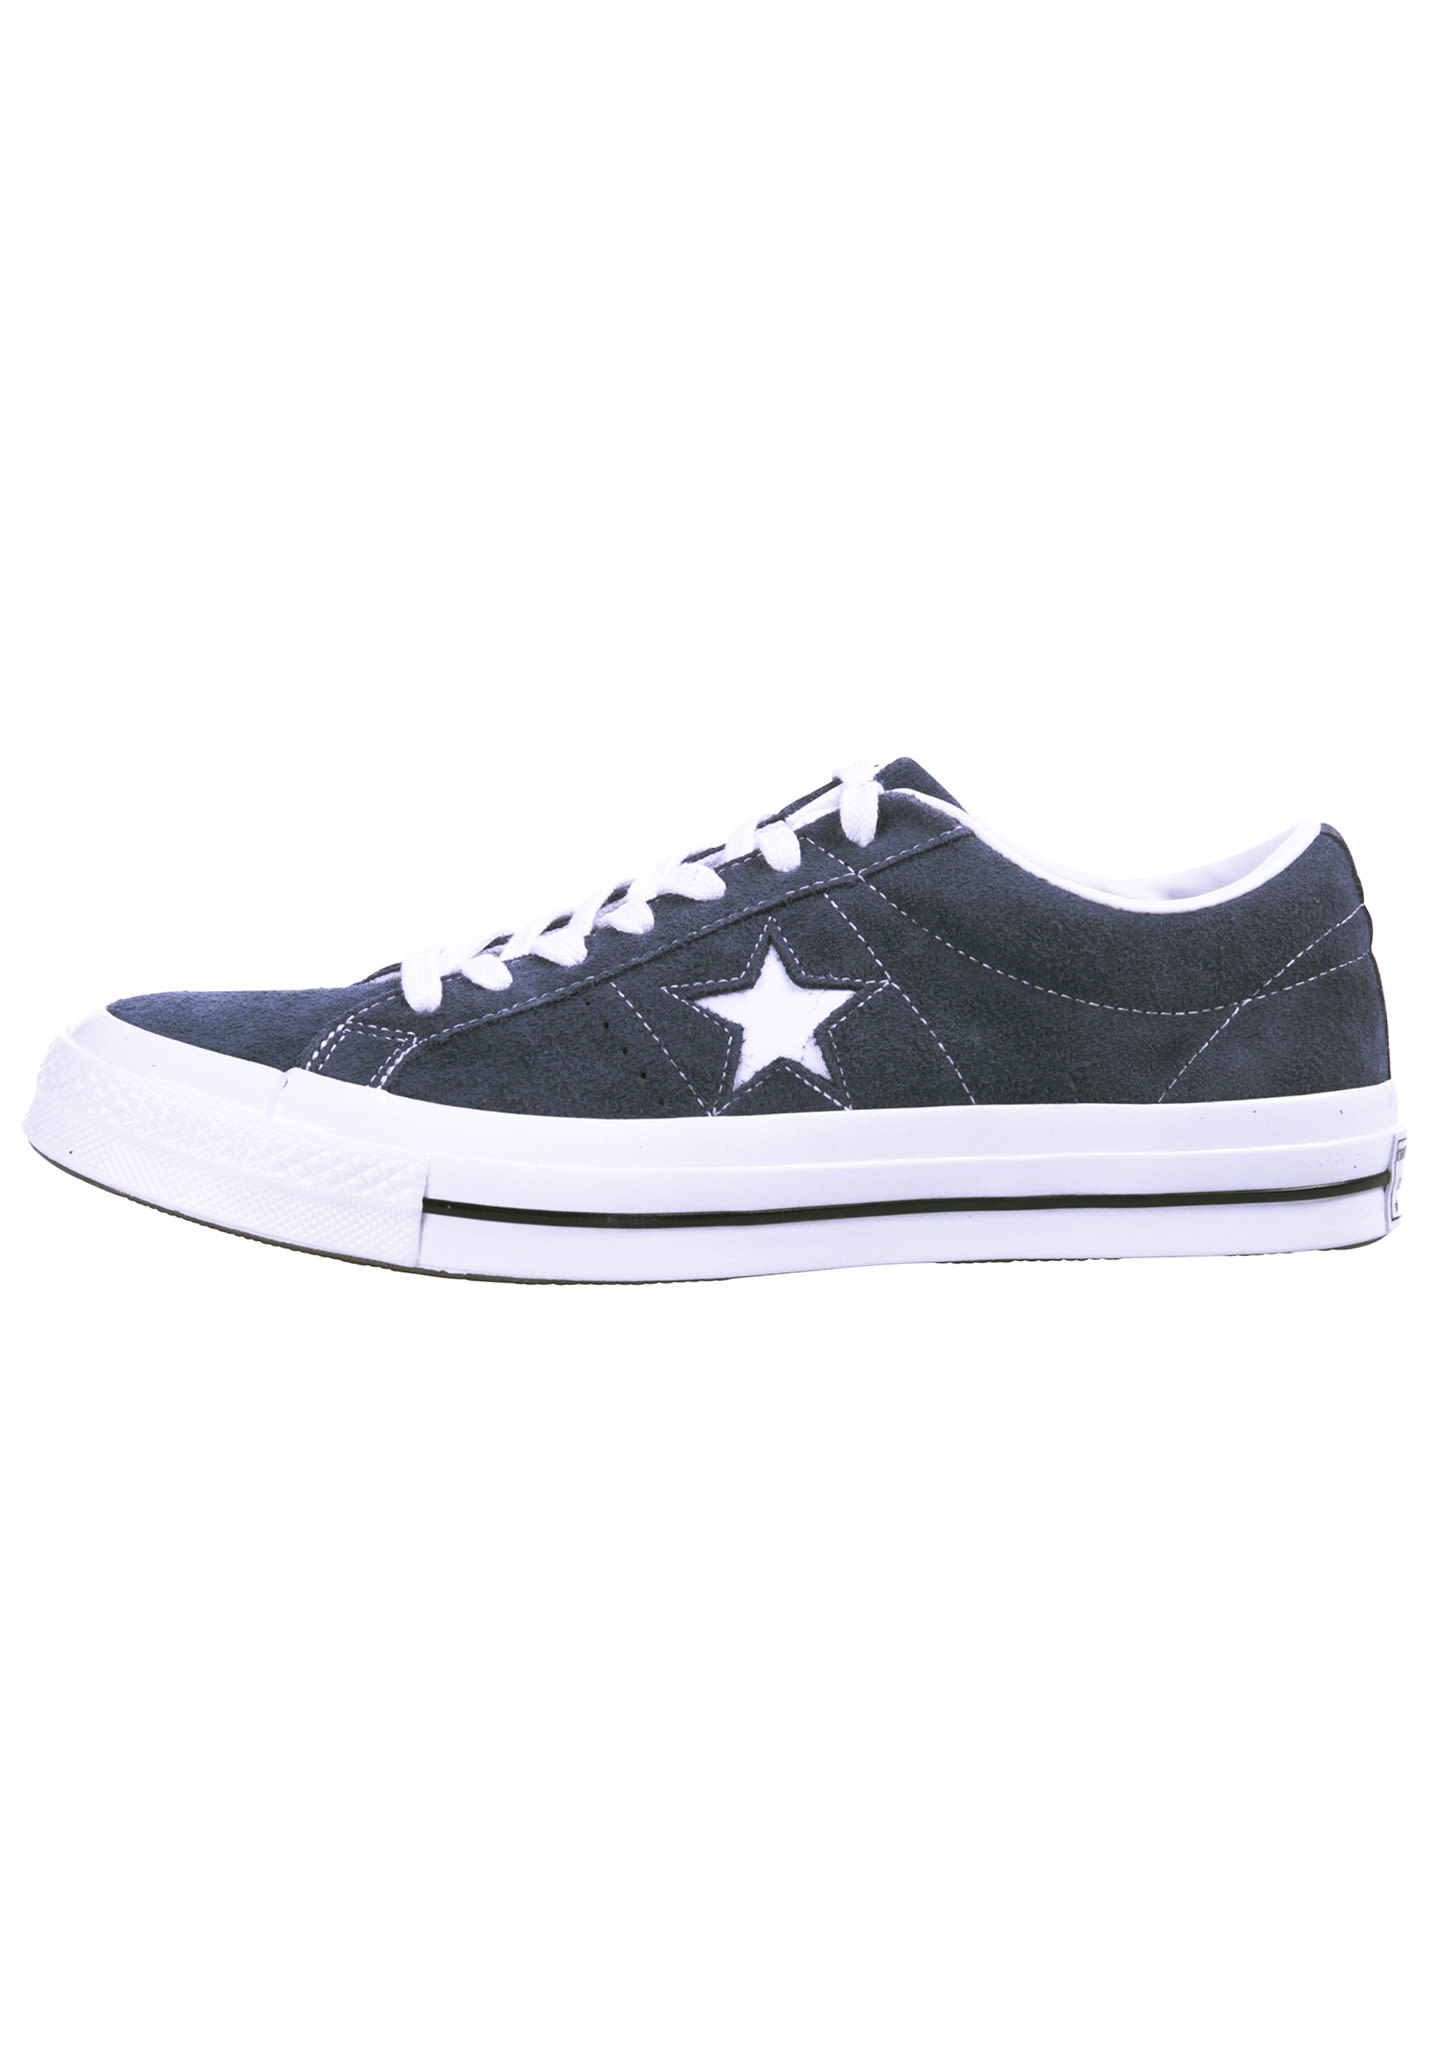 Converse One Star OX - Sneakers for Men - Blue